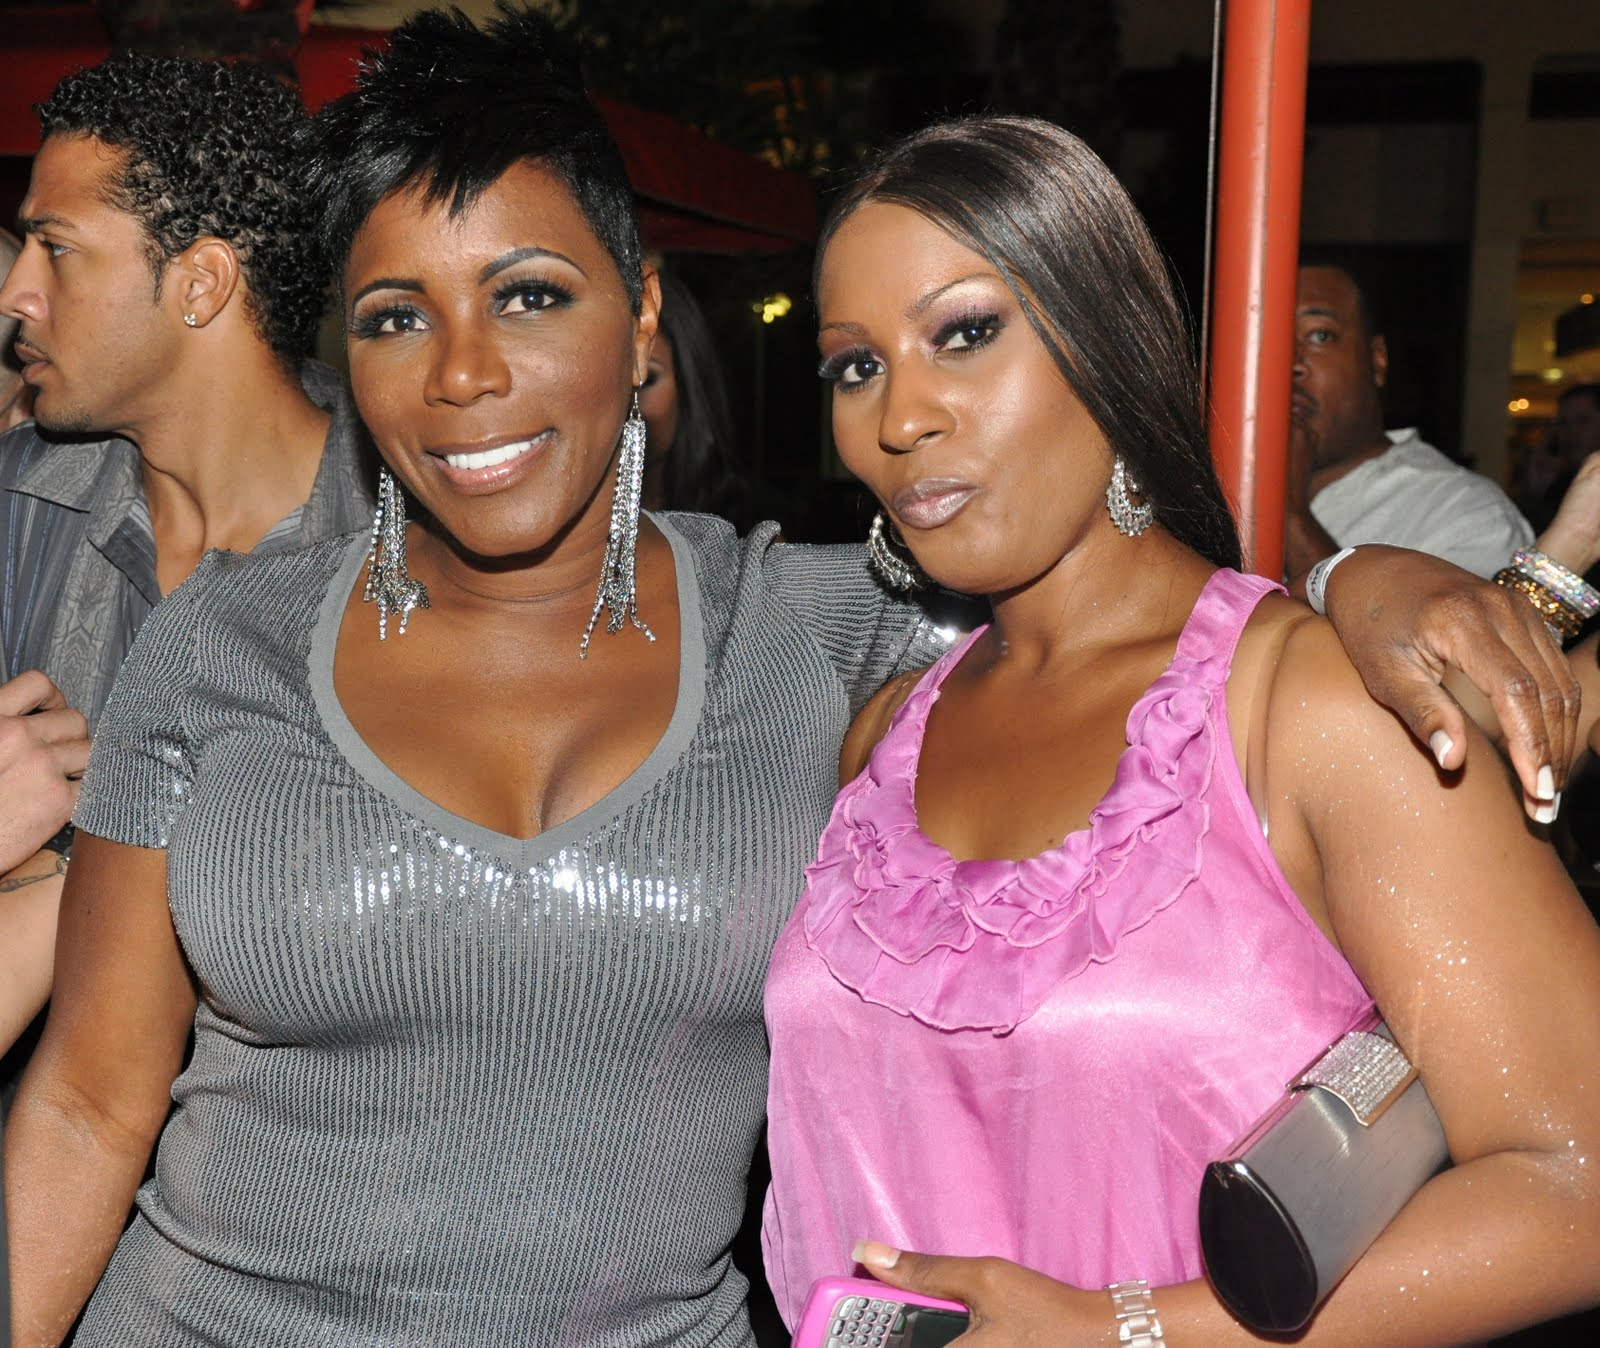 Forum on this topic: Tawny Peaks, sommore/